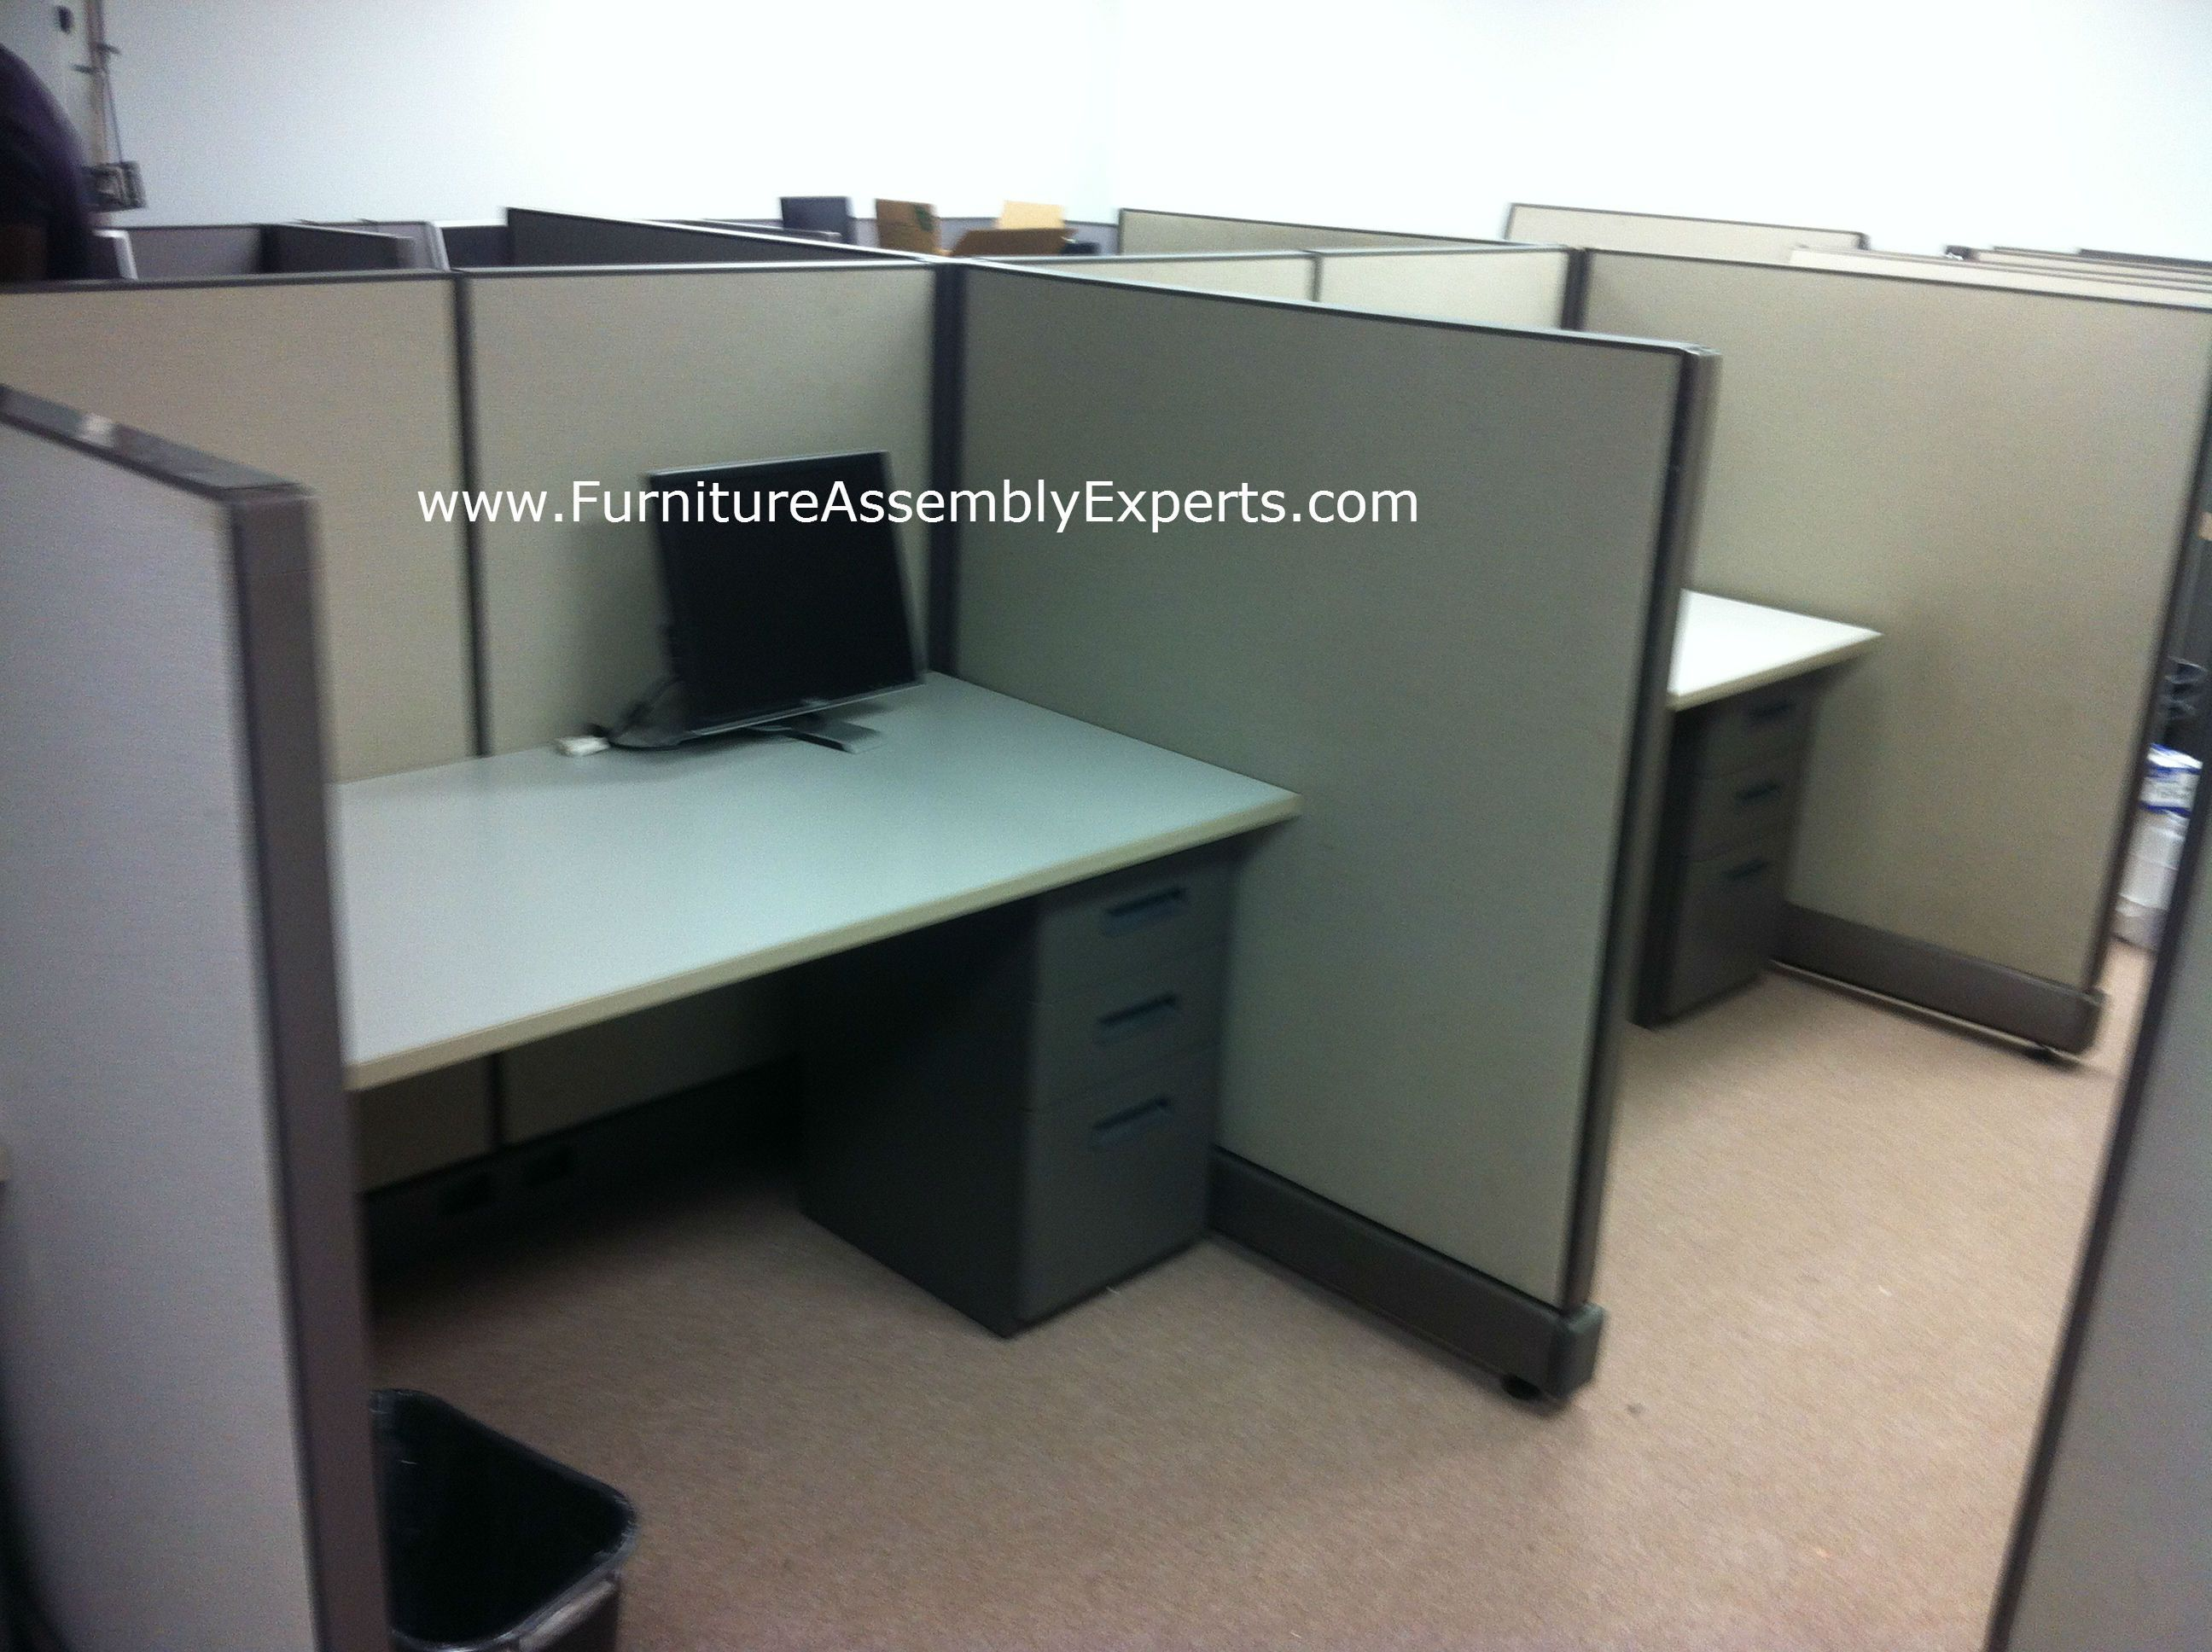 Used Office Cubicle Embled In Baltimore Md By Furniture Embly Experts Llc